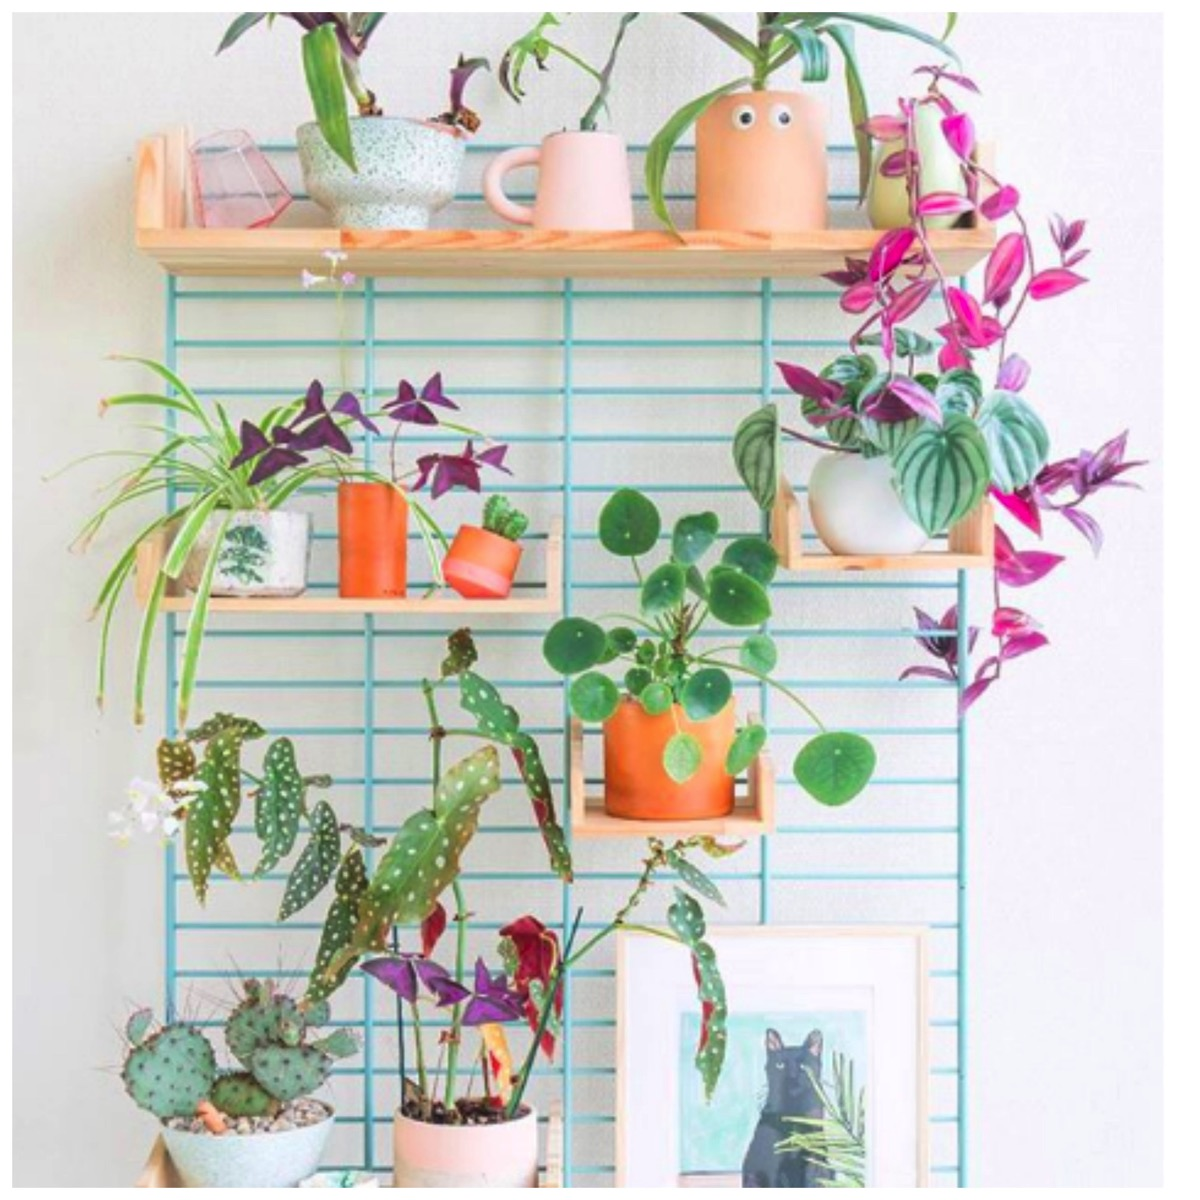 Colorful and fun modern plant shelf for home